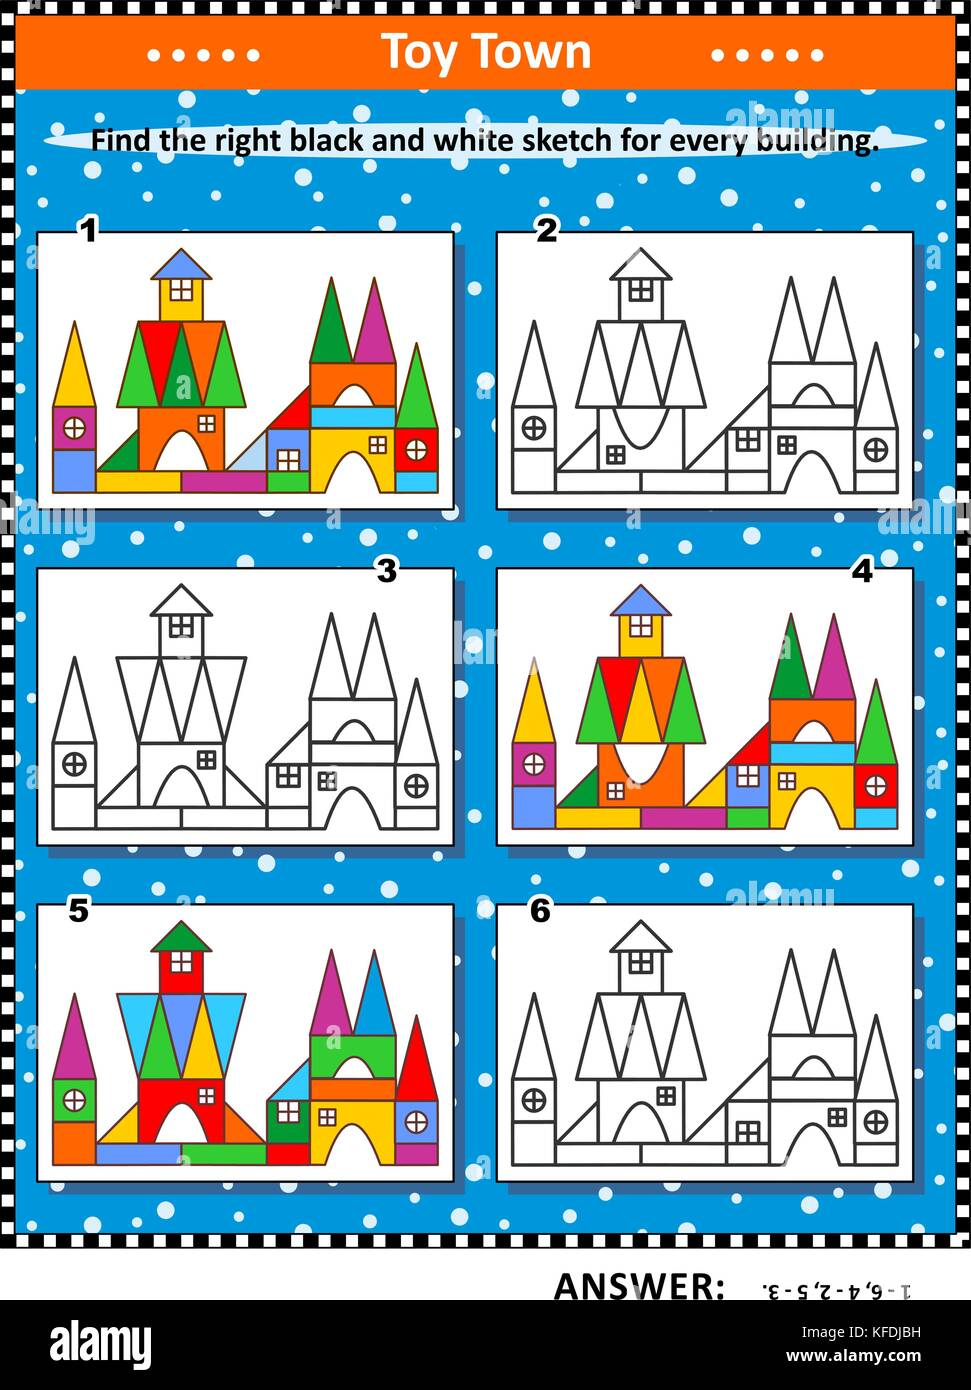 Visual puzzle: Find the right black and white sketch for every colorful picture of toy town building. Answer included. - Stock Image